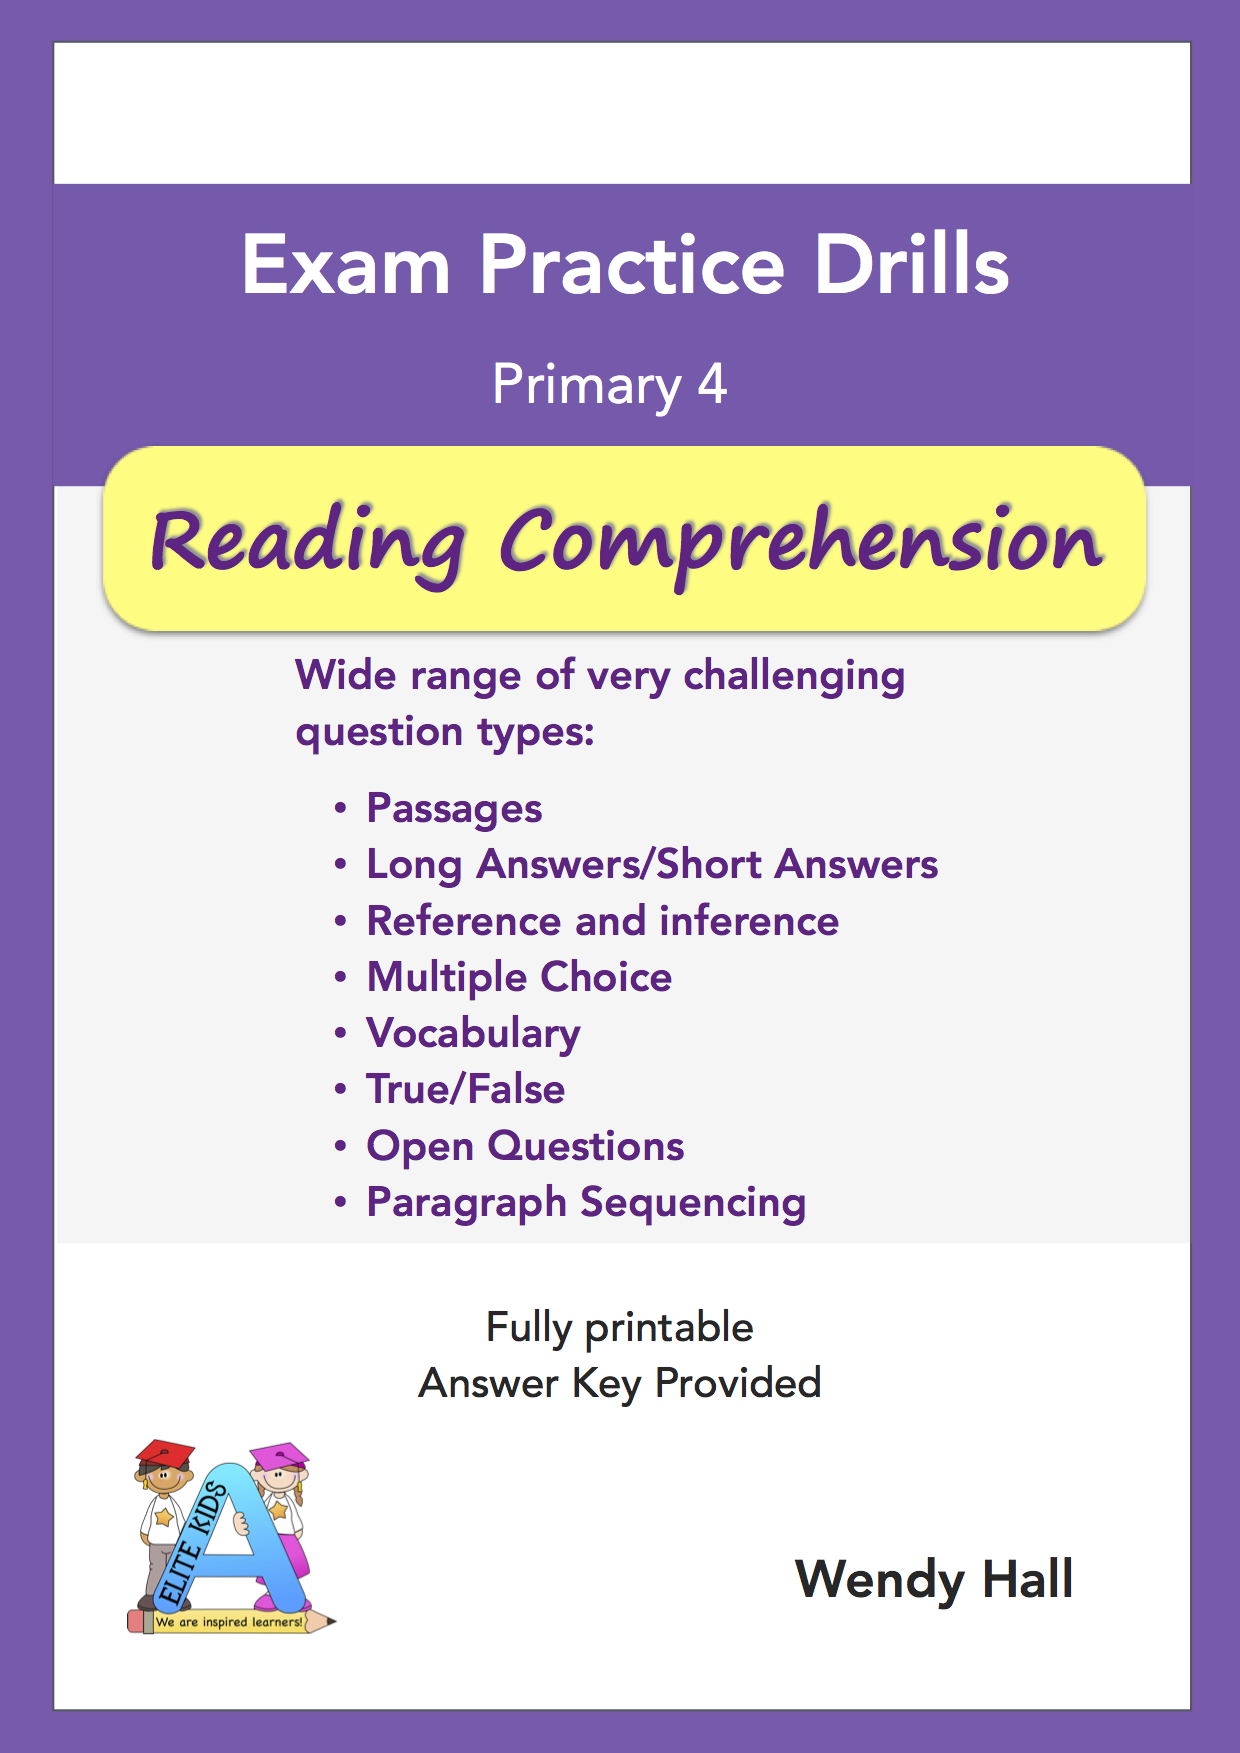 Elite Kids | Exam Practice Drills - Reading Comprehension - Primary 4